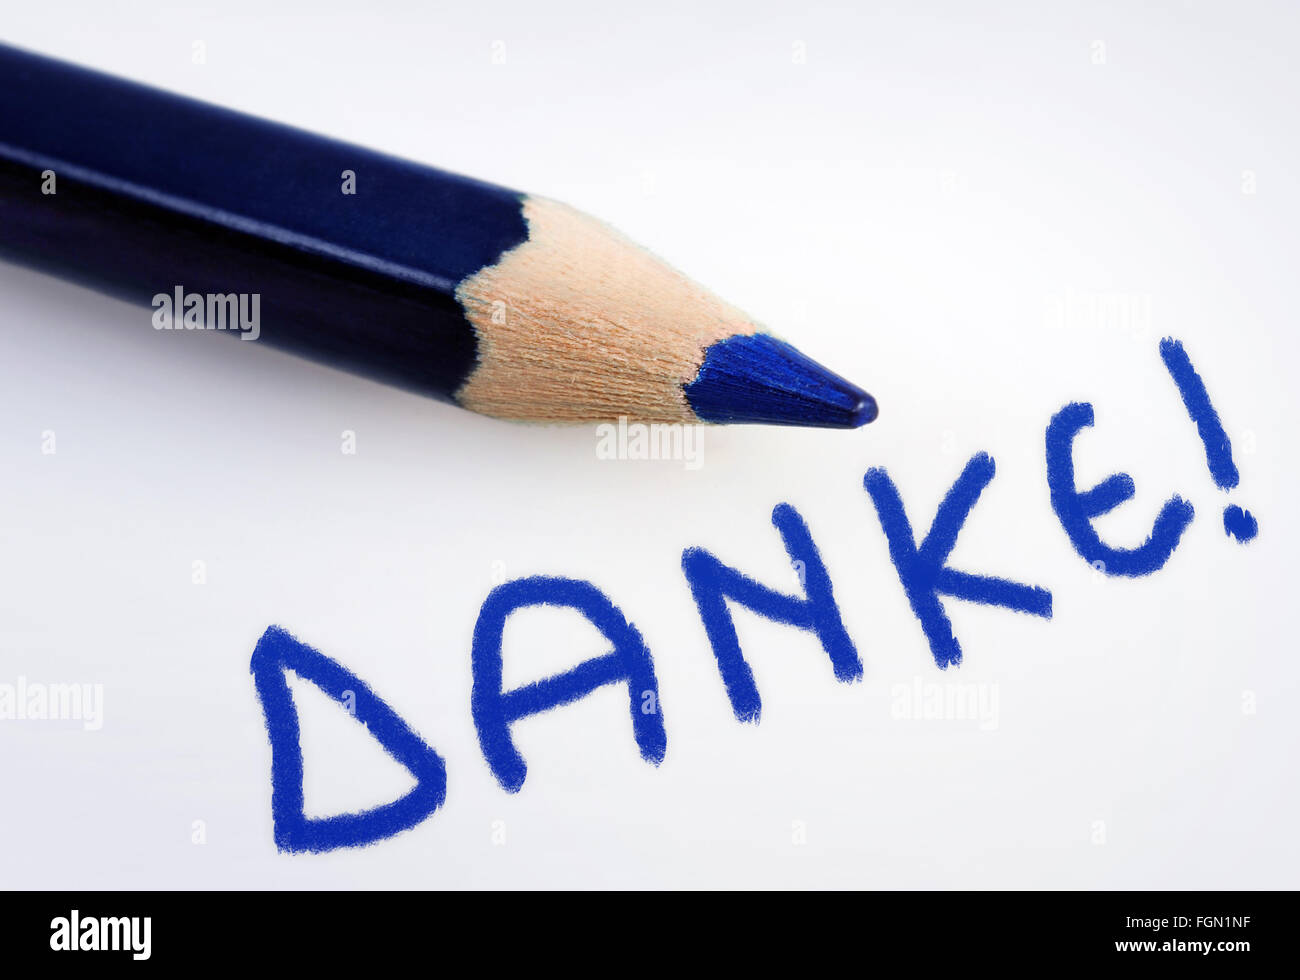 Danke word on grey background Stock Photo